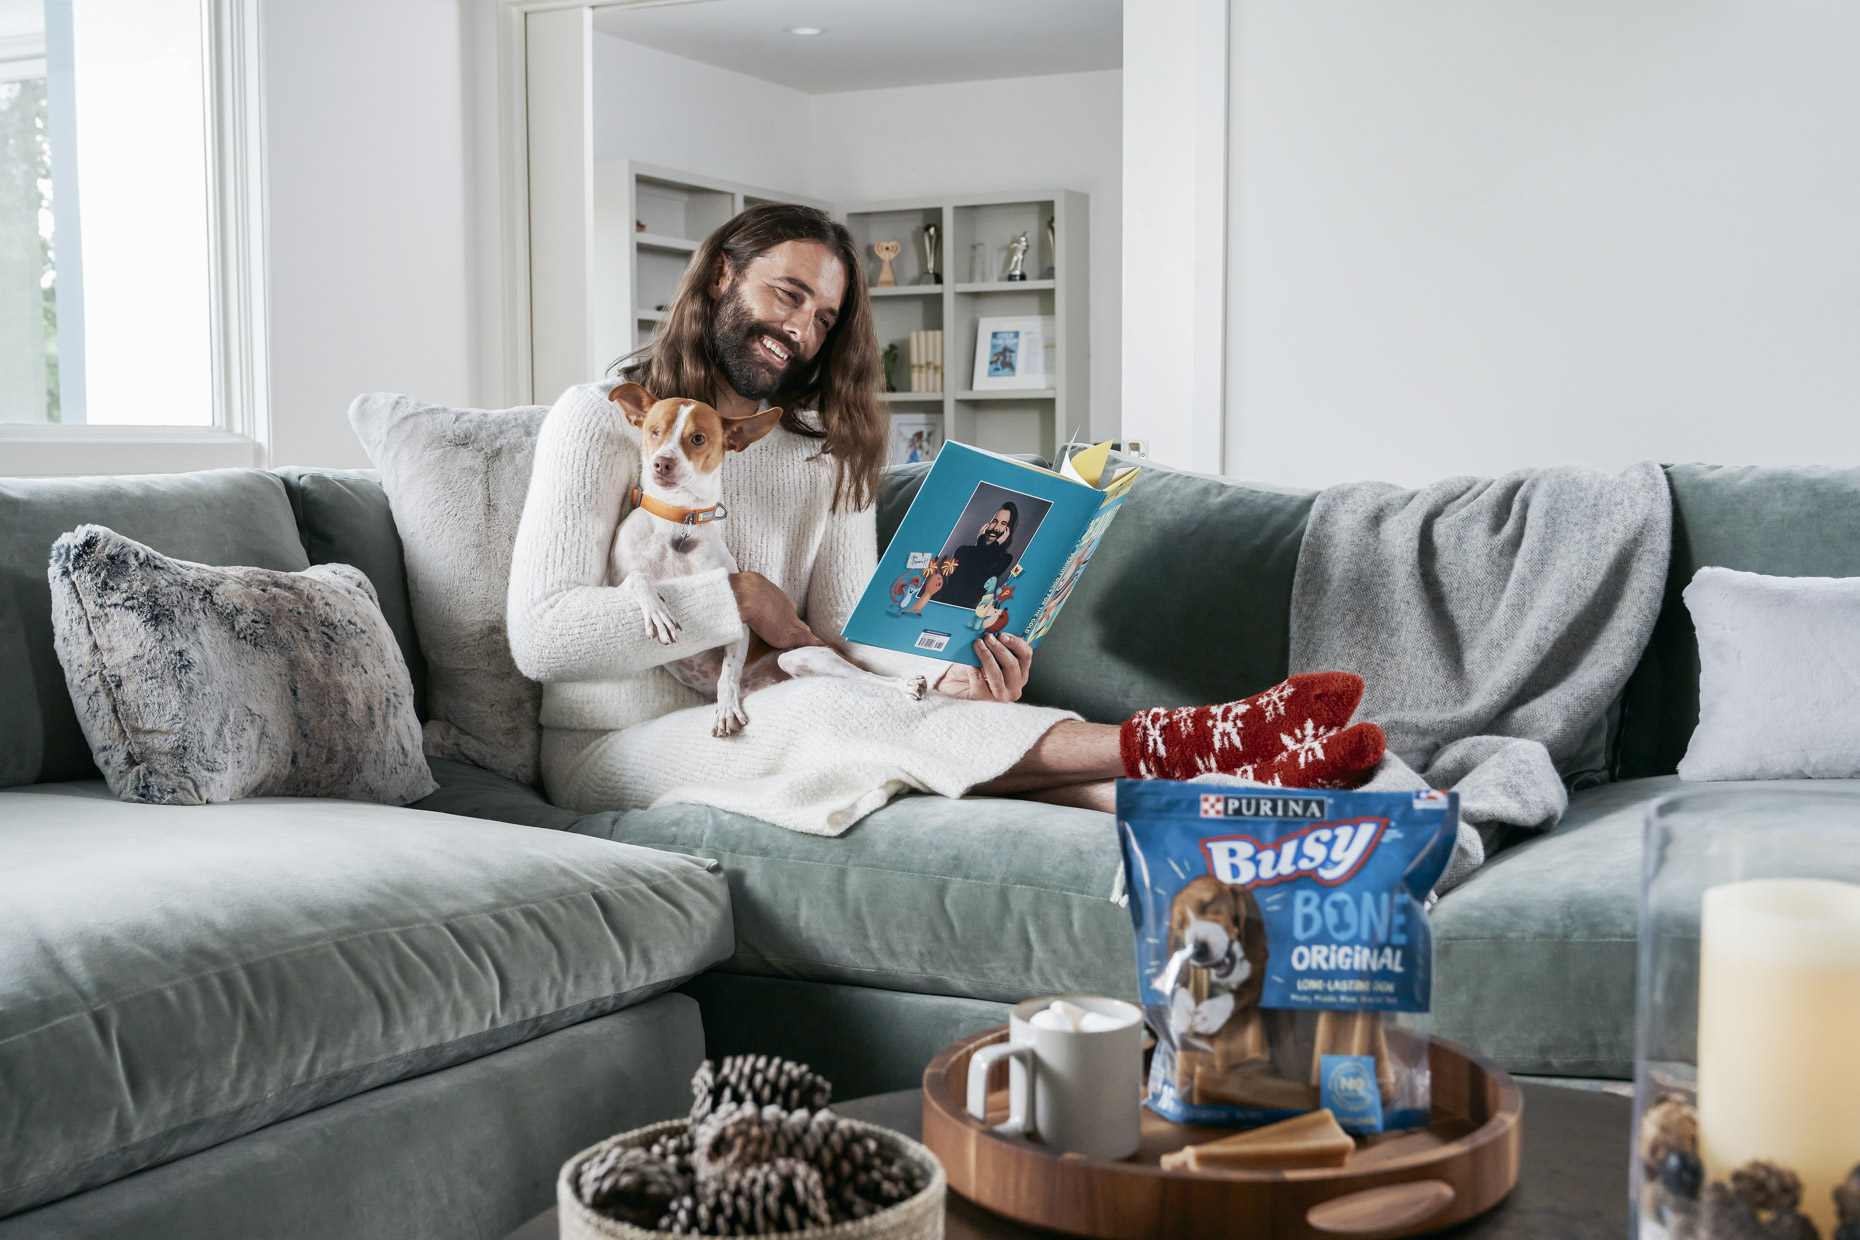 Jonathan Van Ness pet dog Pablo on couch with Purina Busy Bone treat reading book